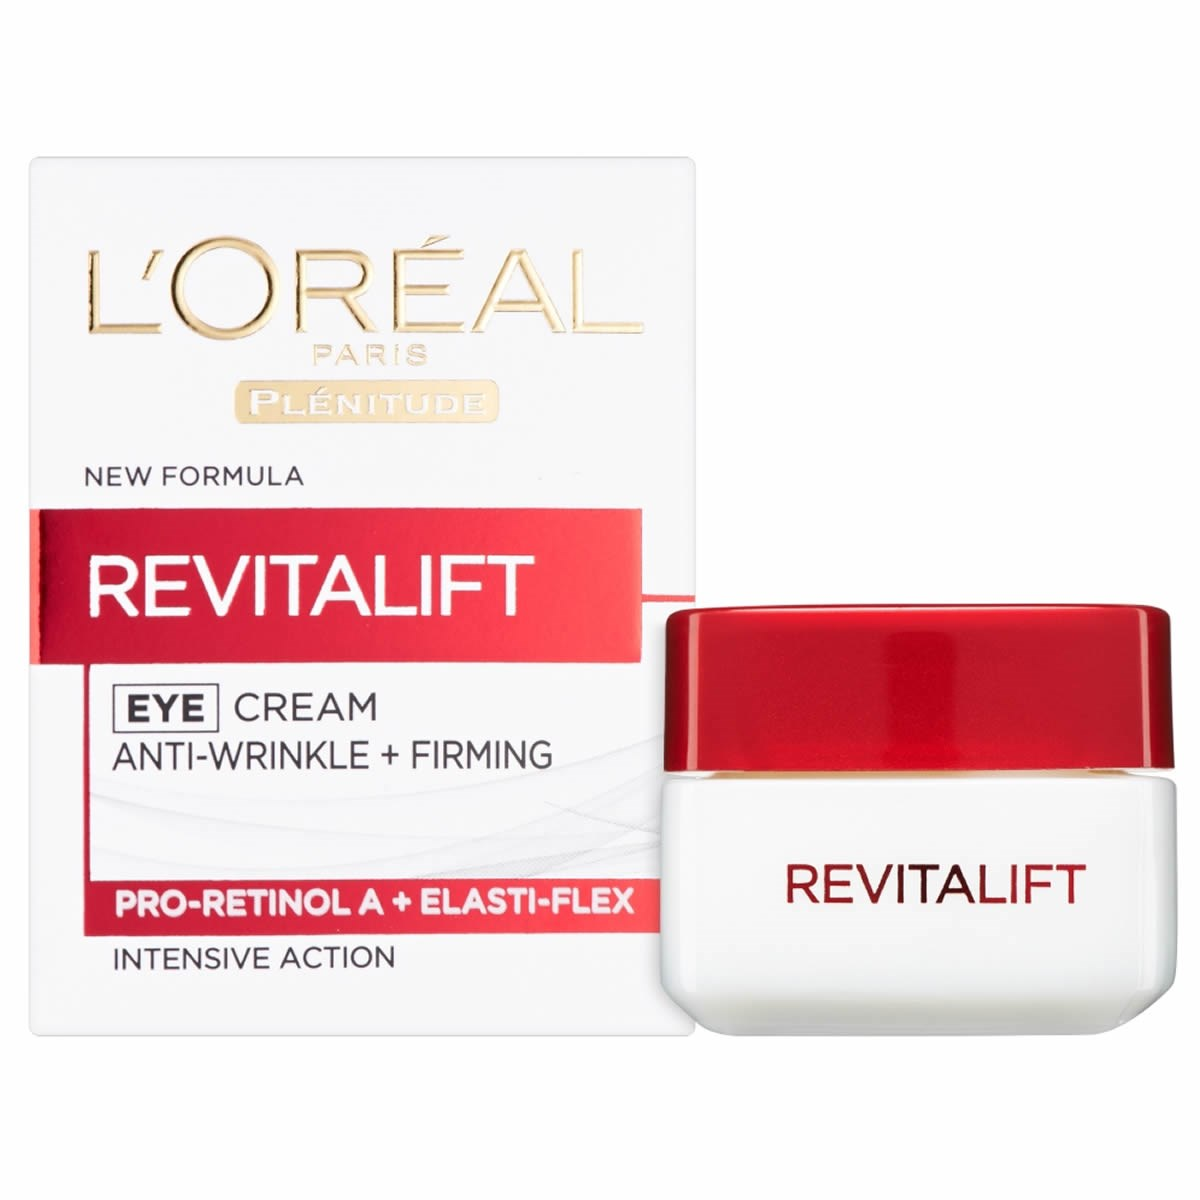 L'Oreal Paris Revitalift Eye Cream